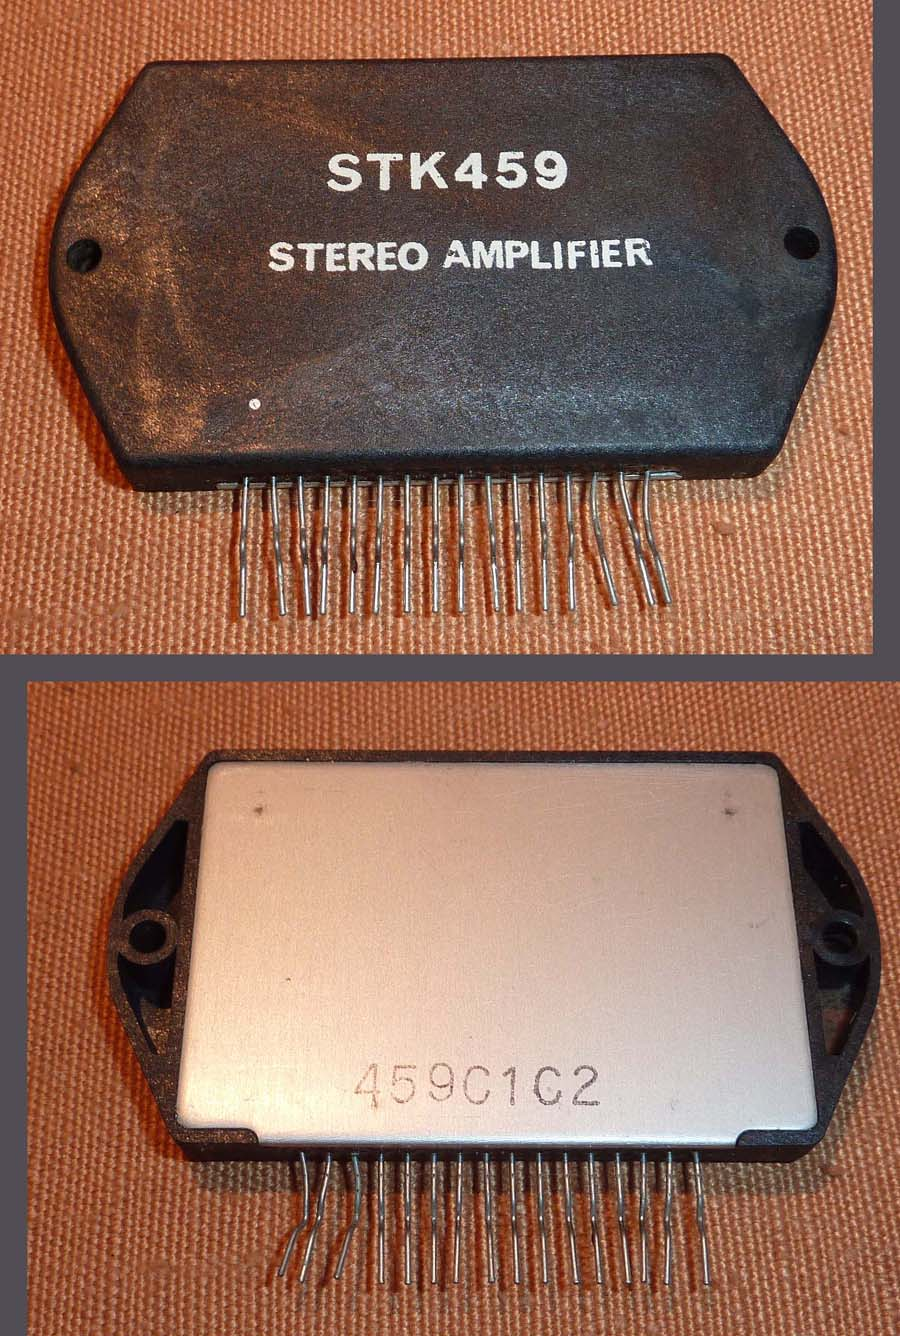 Stk459 Stereo Amplifier Circuit Diagram Other Audio Using